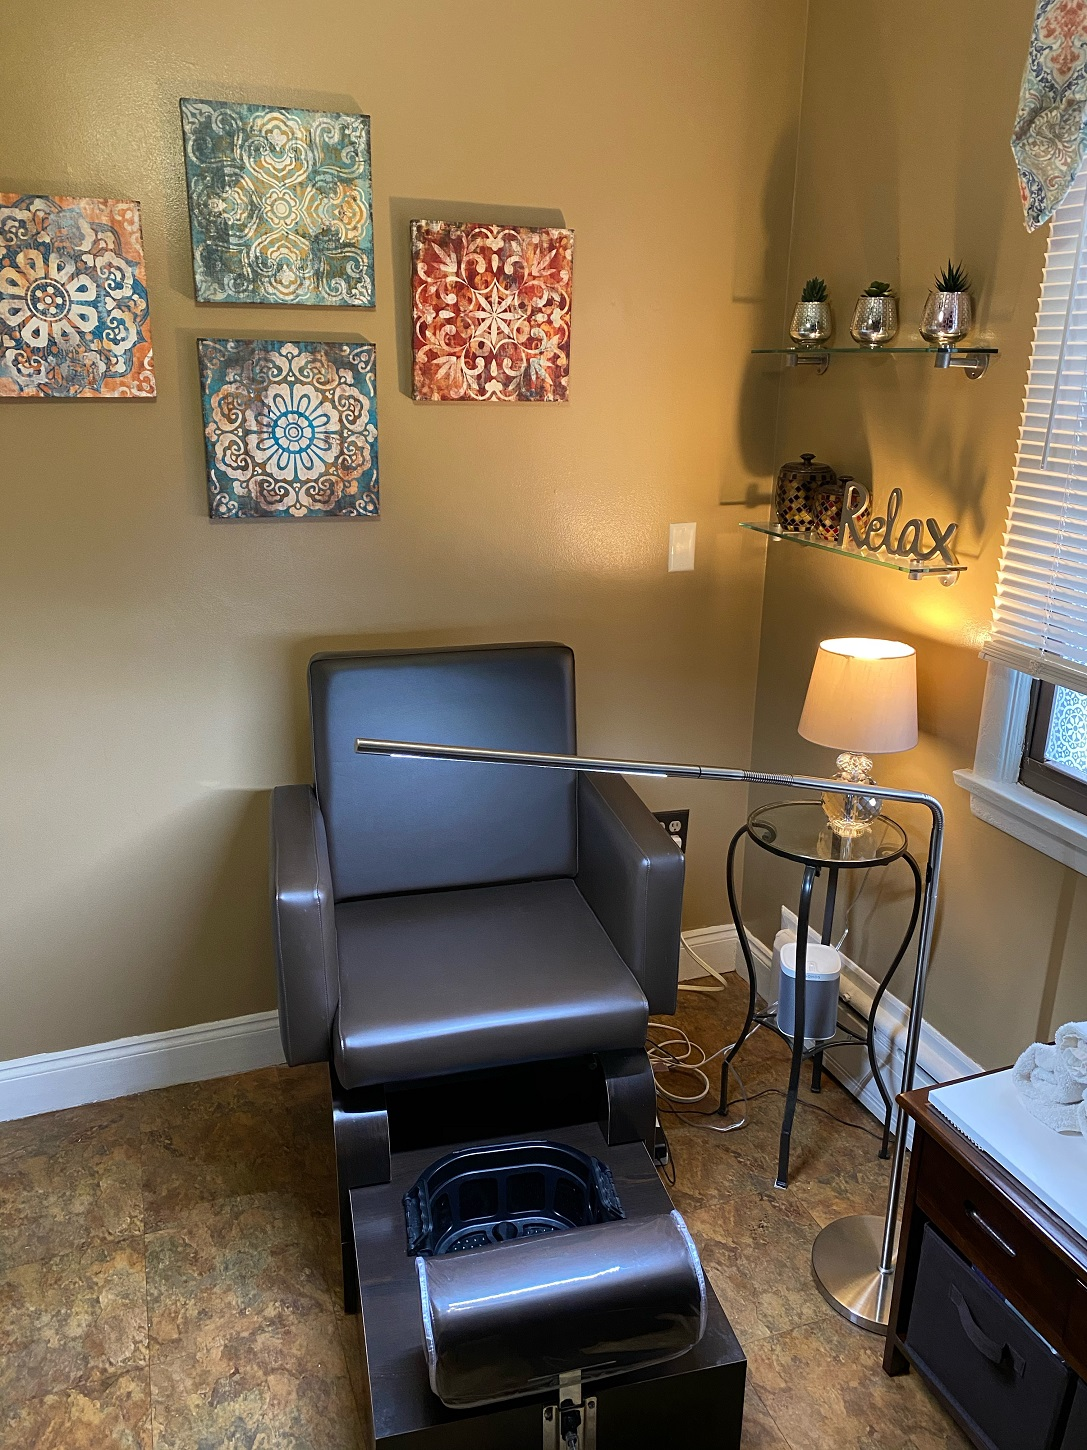 Private Pedicure Room Now Available!